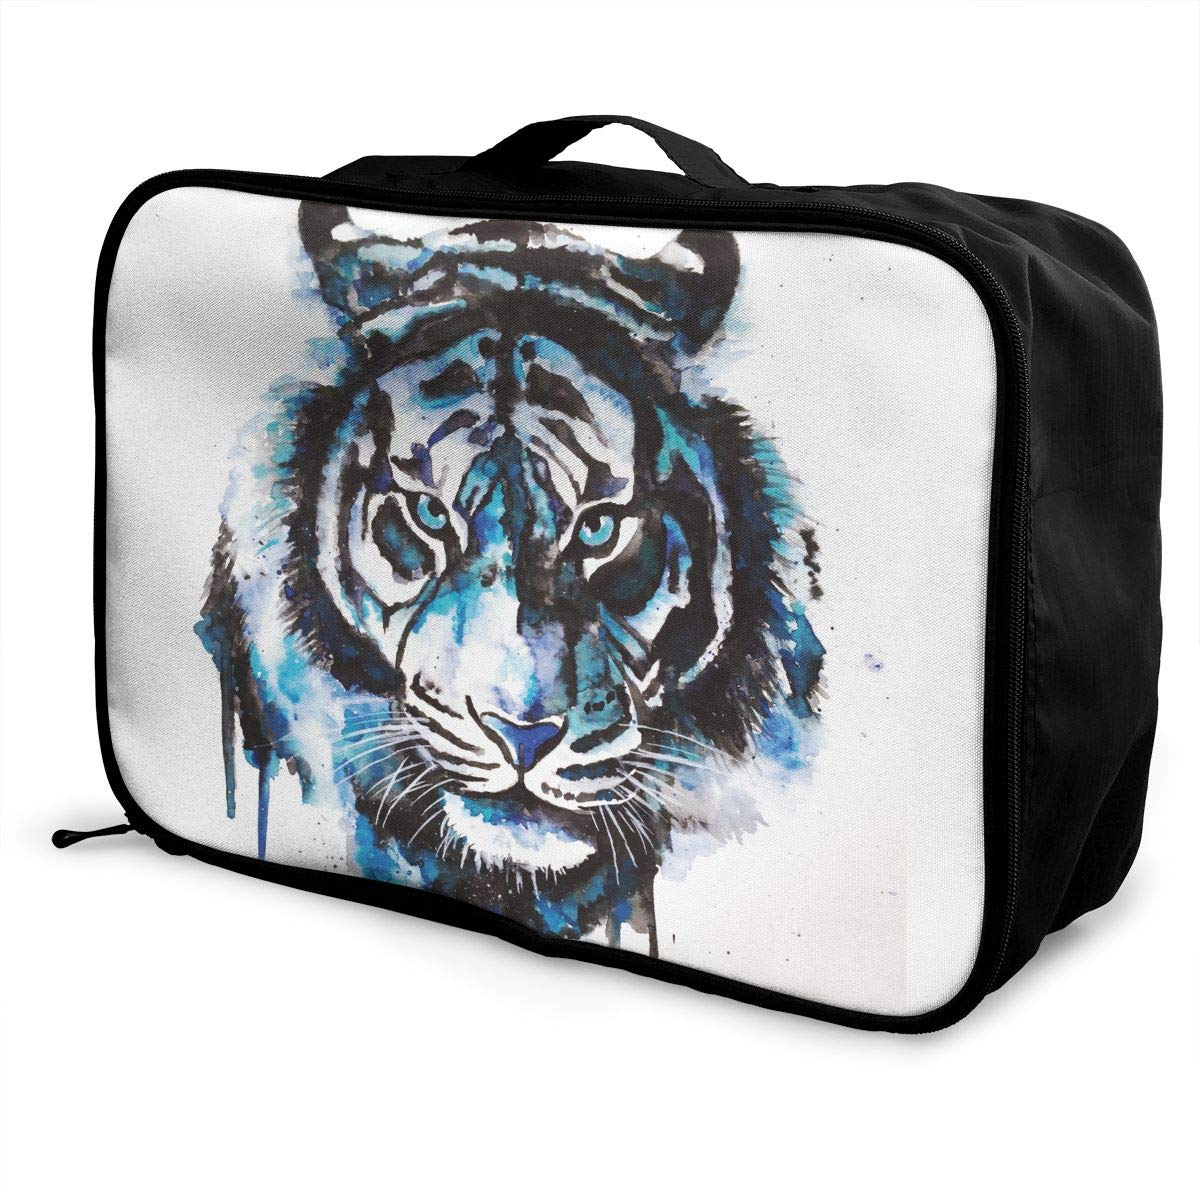 YueLJB Blue Tiger Watercolor Lightweight Large Capacity Portable Luggage Bag Travel Duffel Bag Storage Carry Luggage Duffle Tote Bag